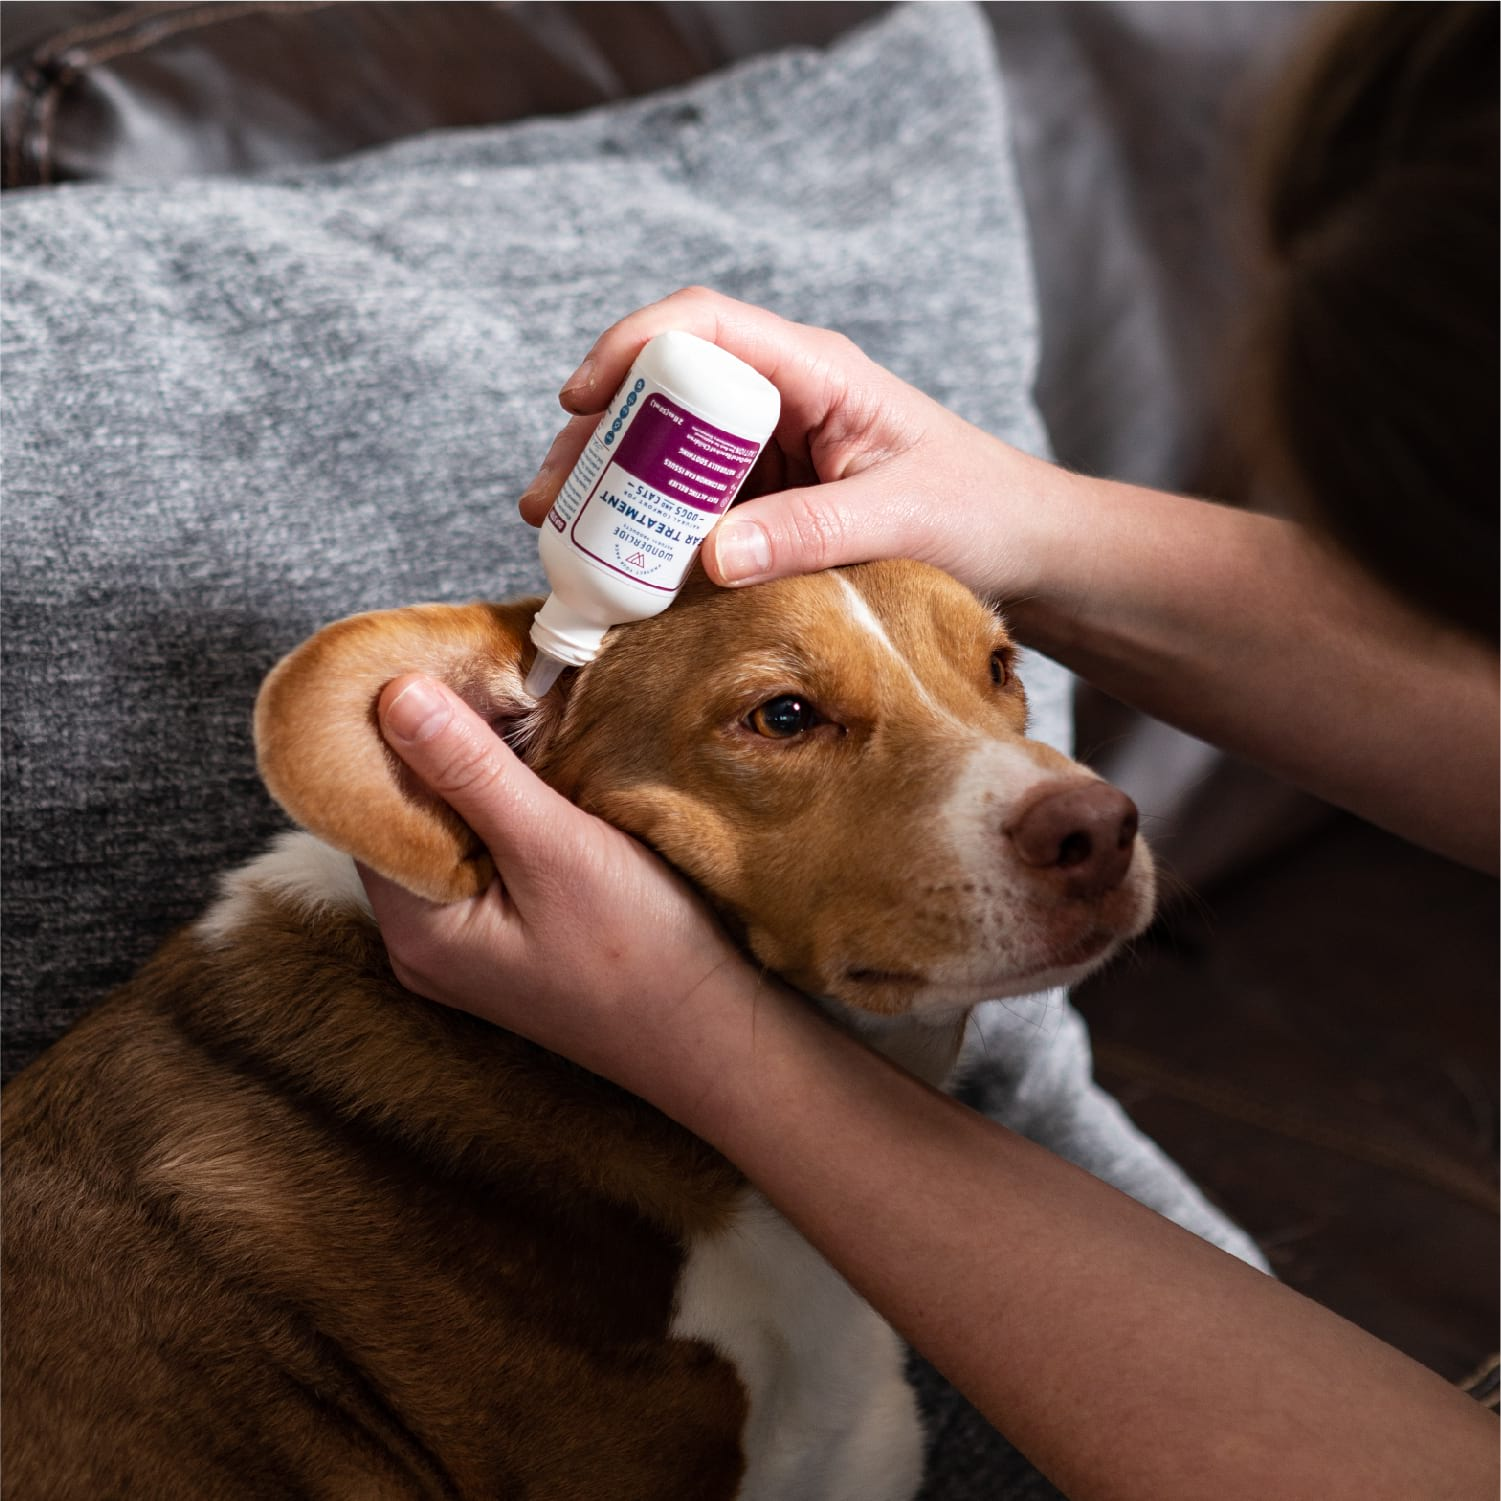 Ear Mite Treatment for Dogs and Cats - In Use